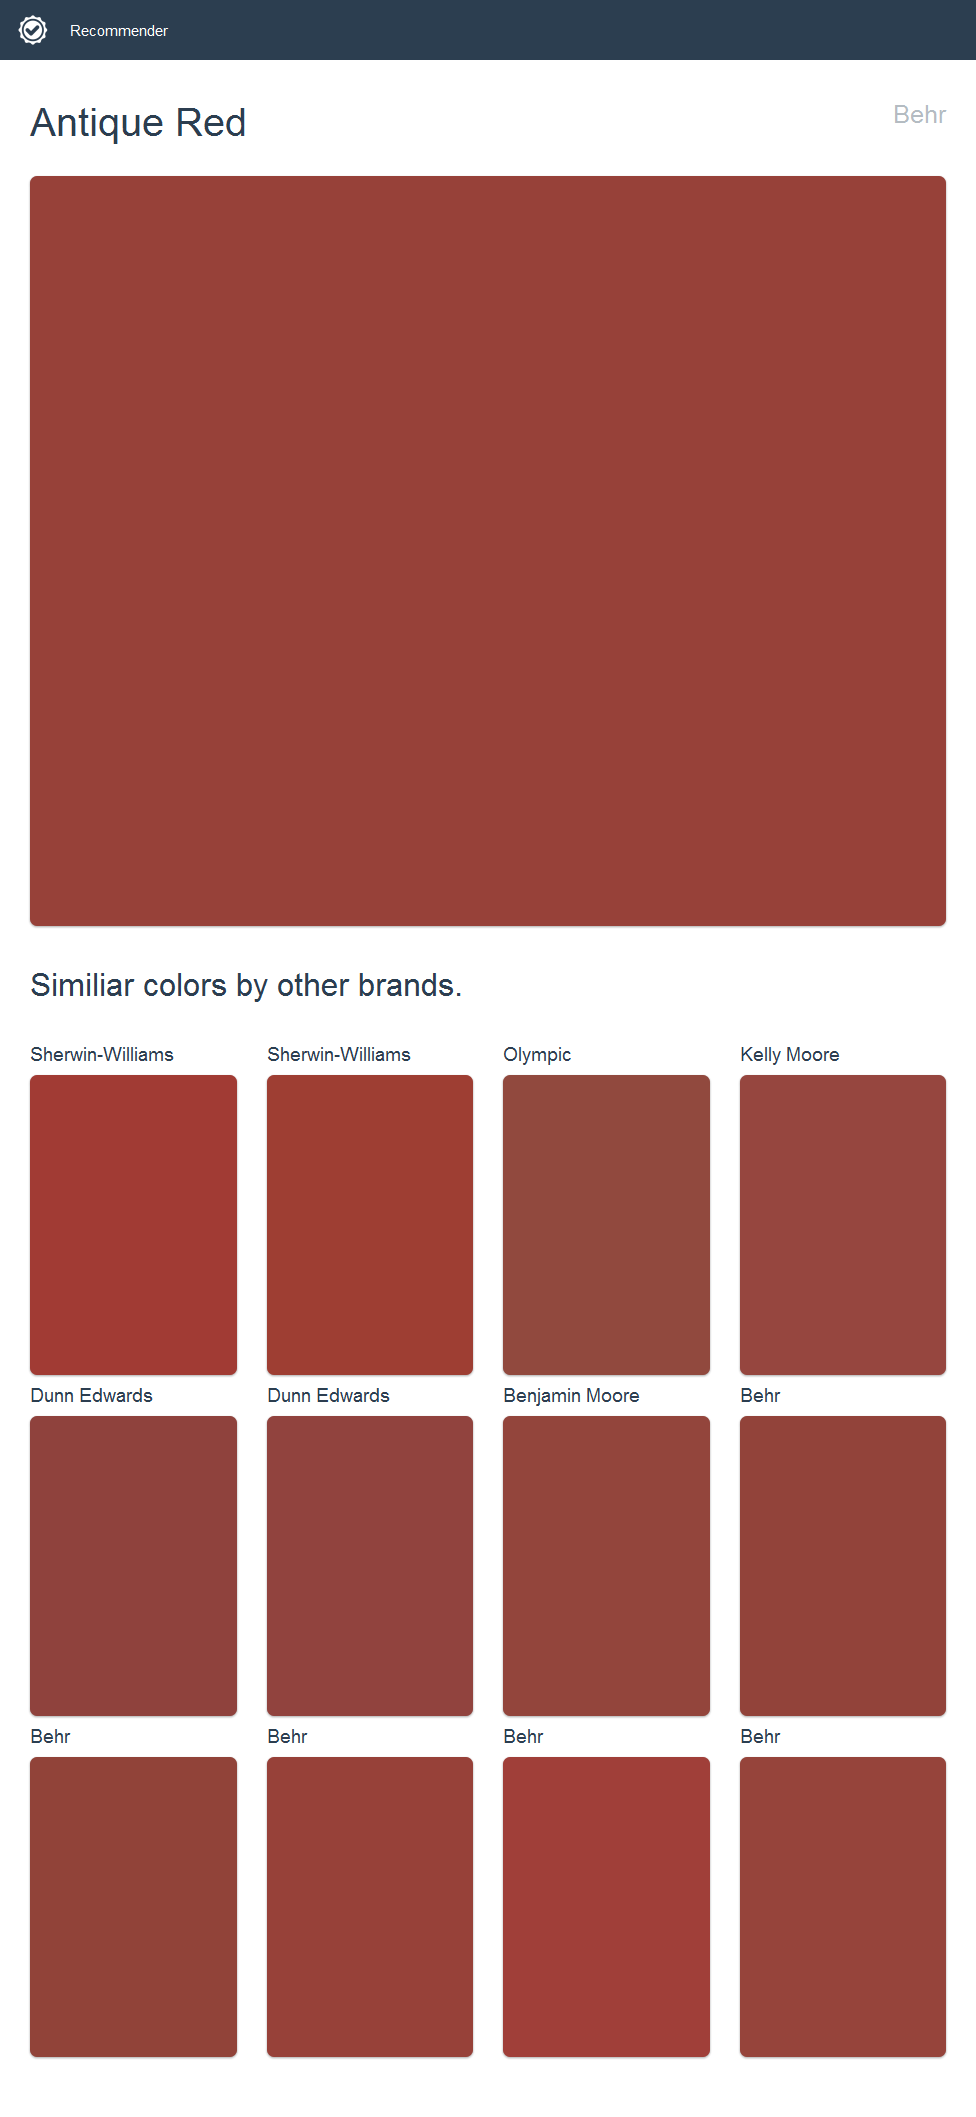 Antique Red Behr Click The Image To See Similiar Colors By Other Brands